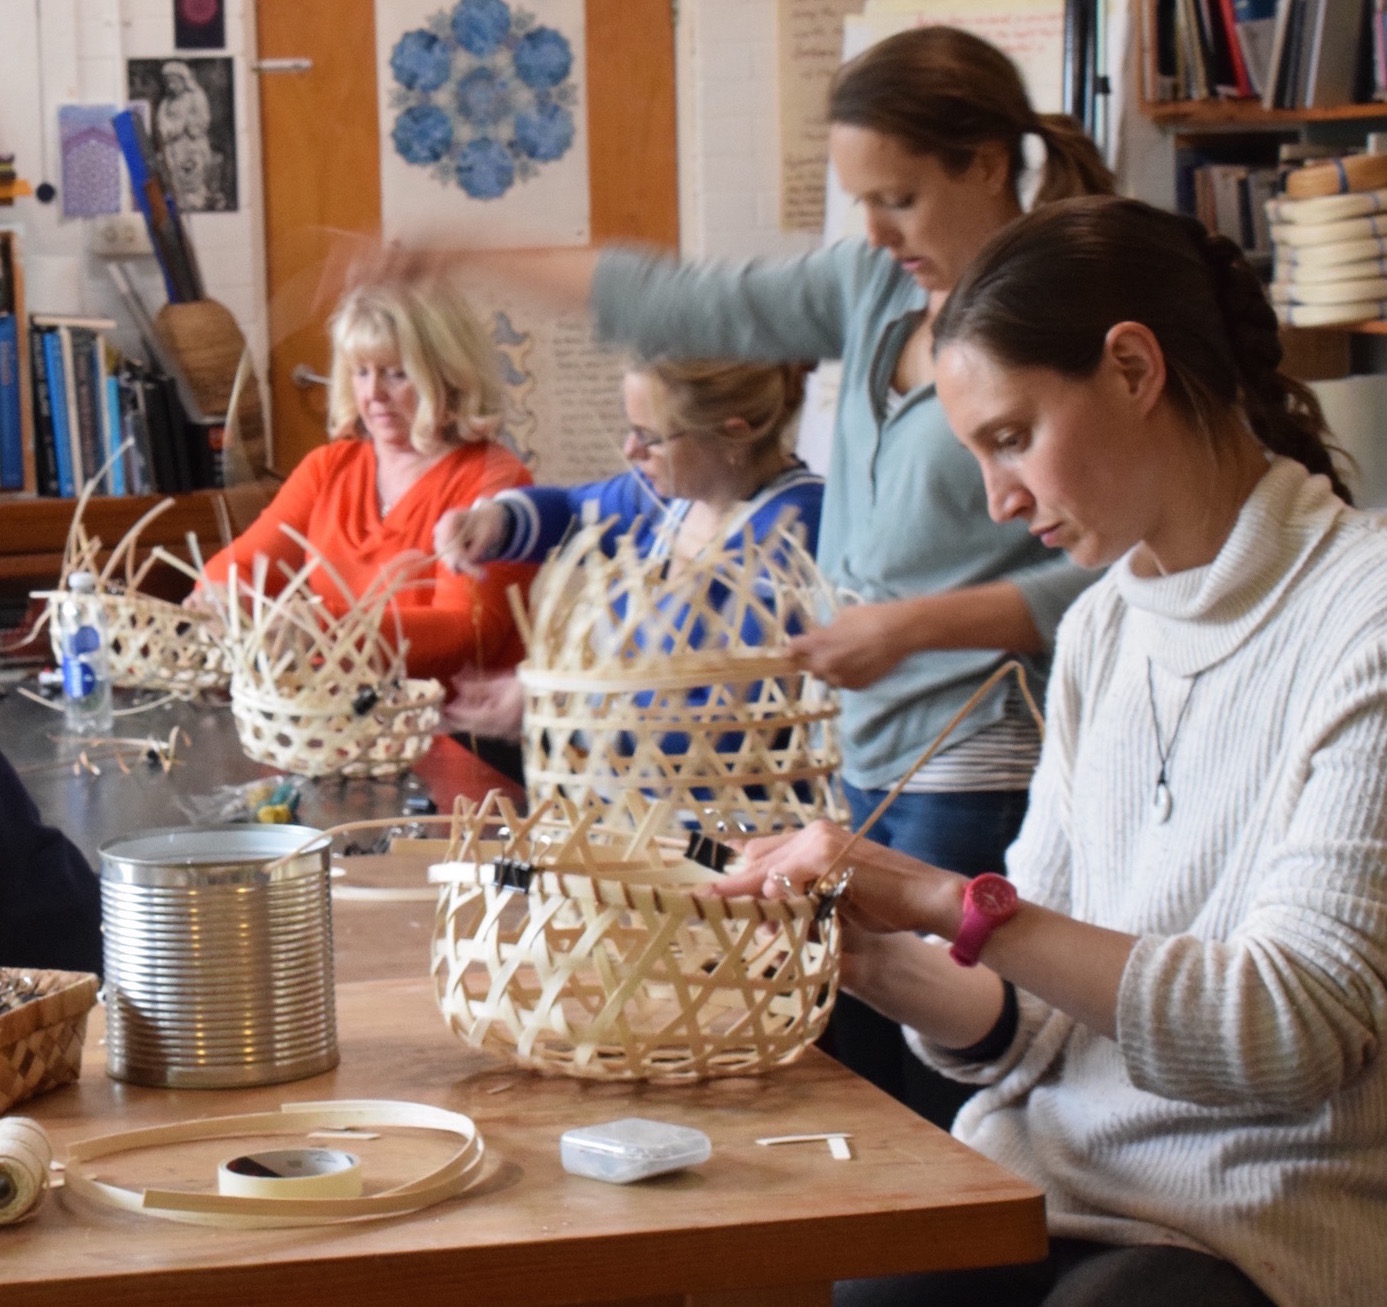 Sacred Geometry and Hexagonal Weave Basketry courses at SAOG Studios